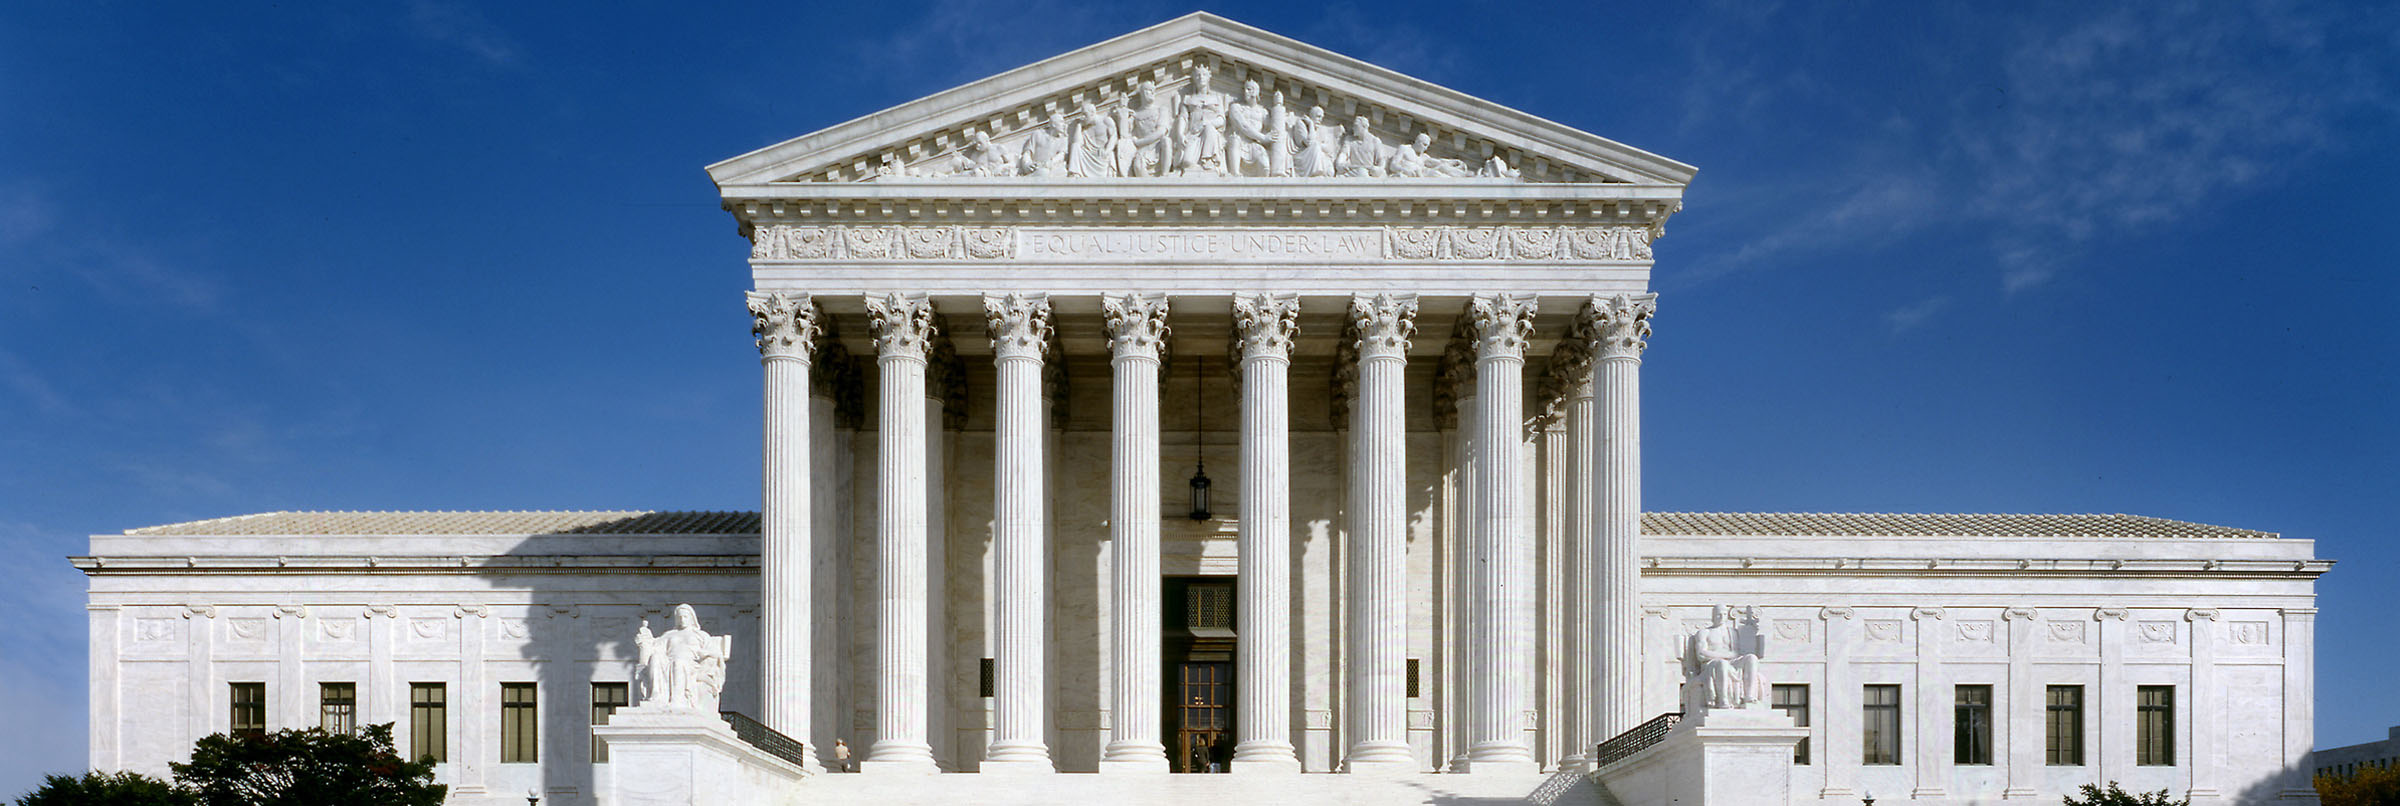 Facade of U.S. Supreme Court and efiling.